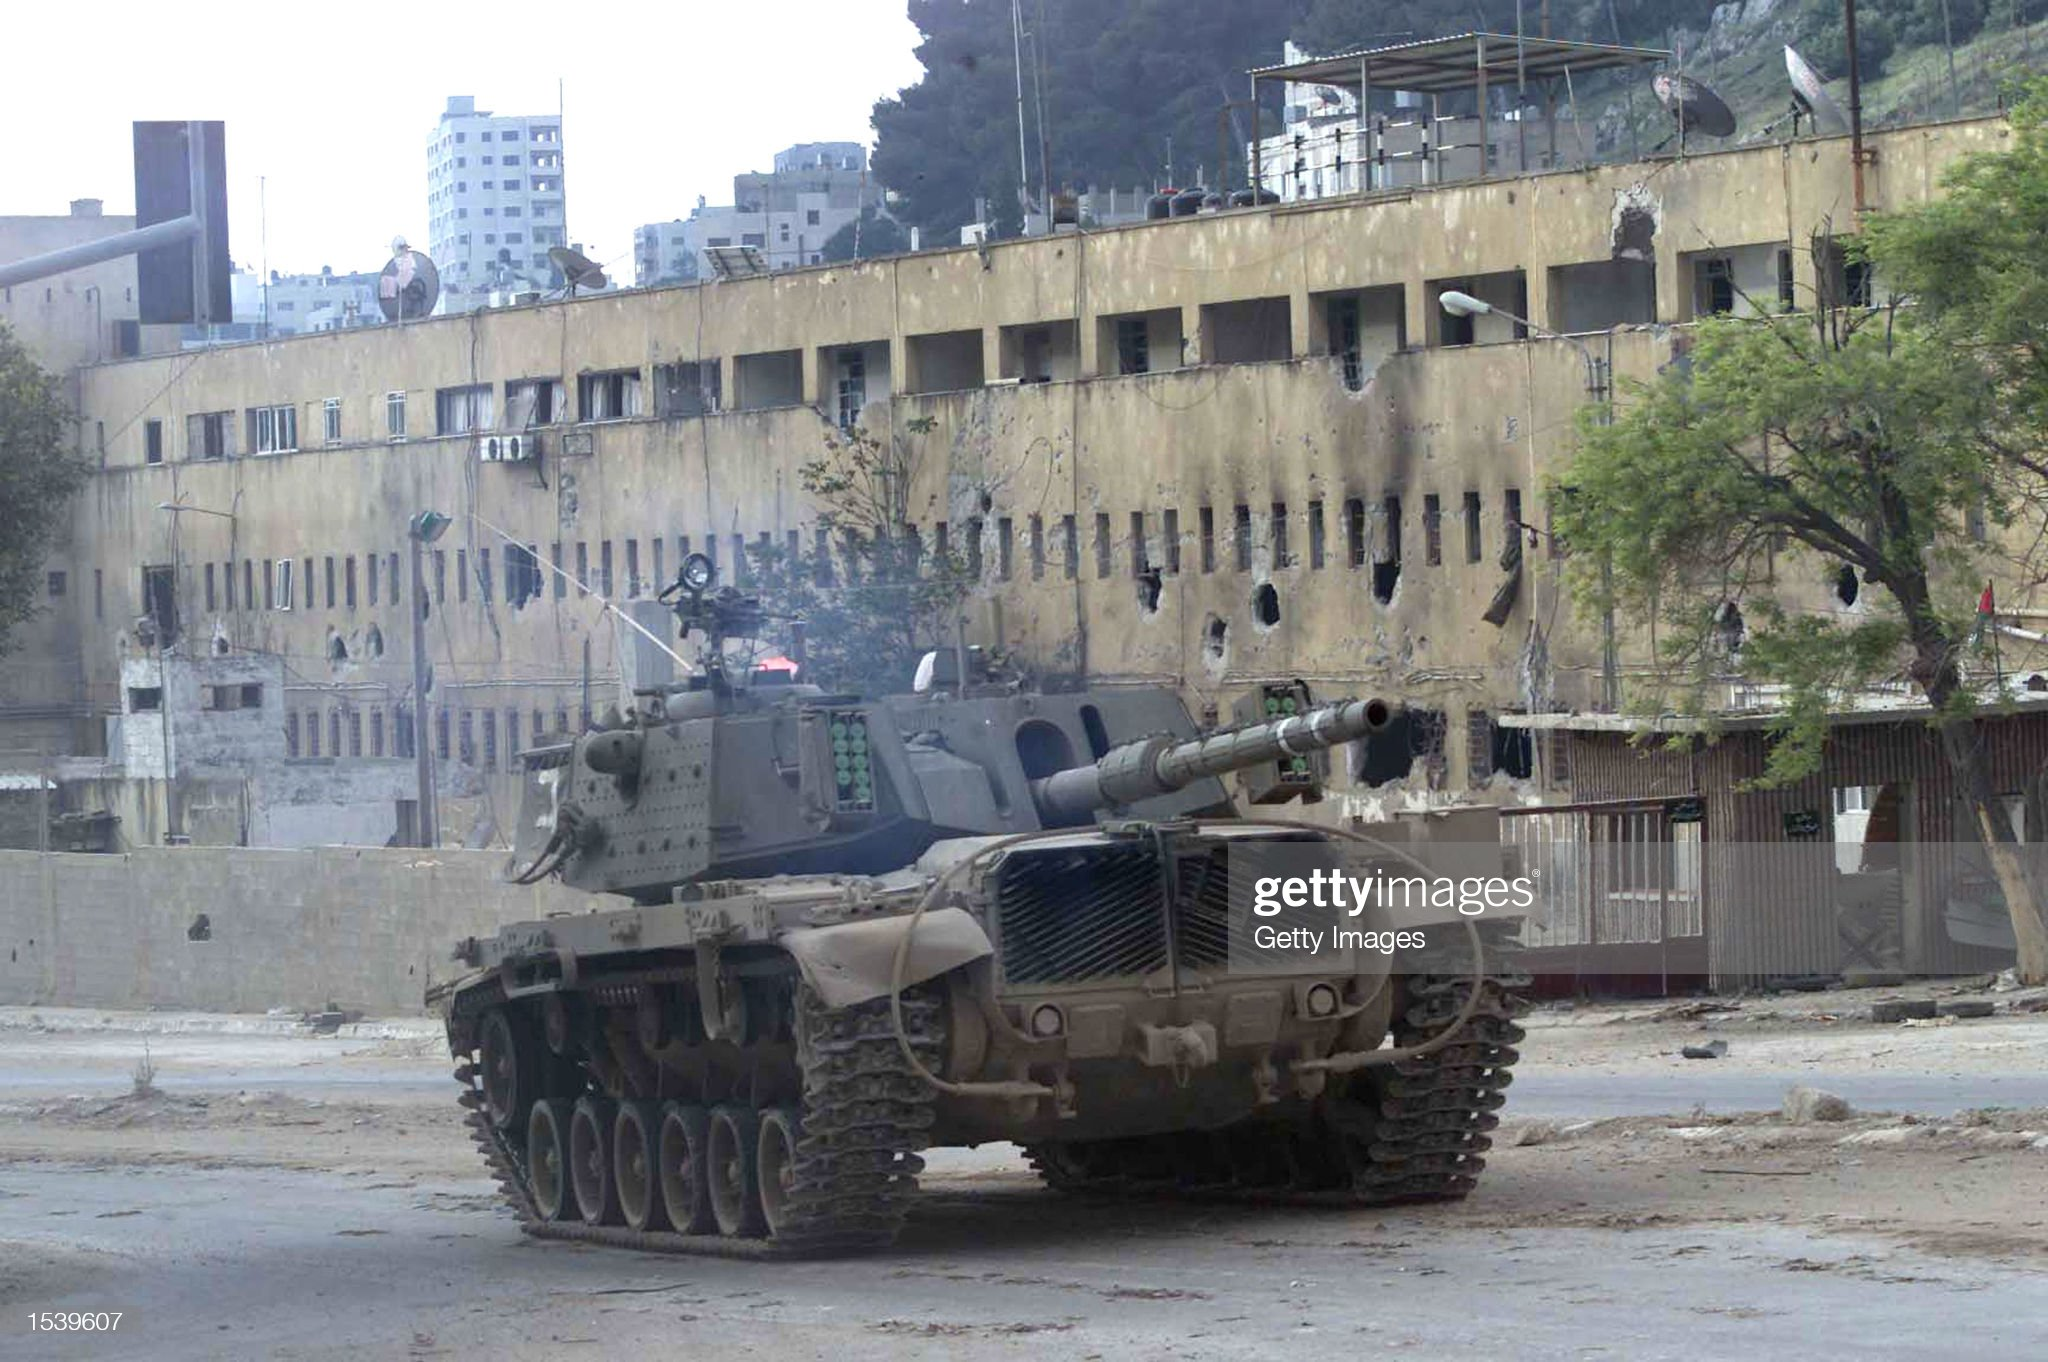 https://media.gettyimages.com/photos/an-israeli-tank-patrols-may-3-2002-in-the-west-bank-city-of-nablus-an-picture-id1539607?s=2048x2048